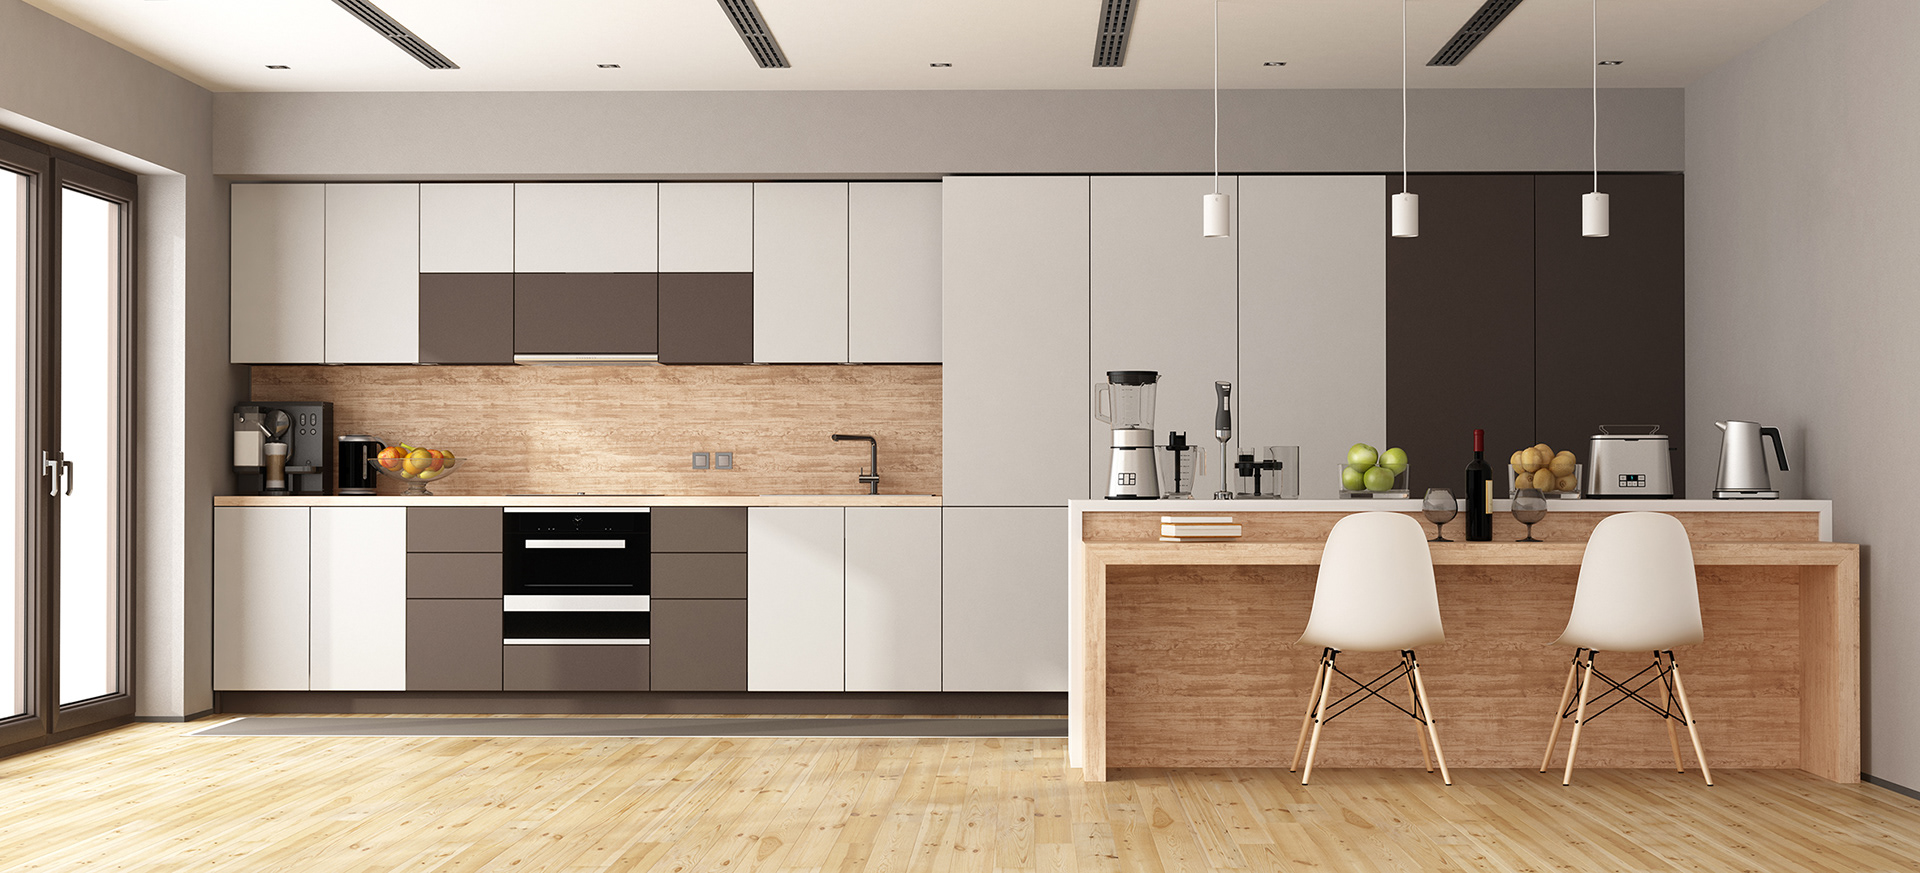 Reeko Kitchens And Cabinetry